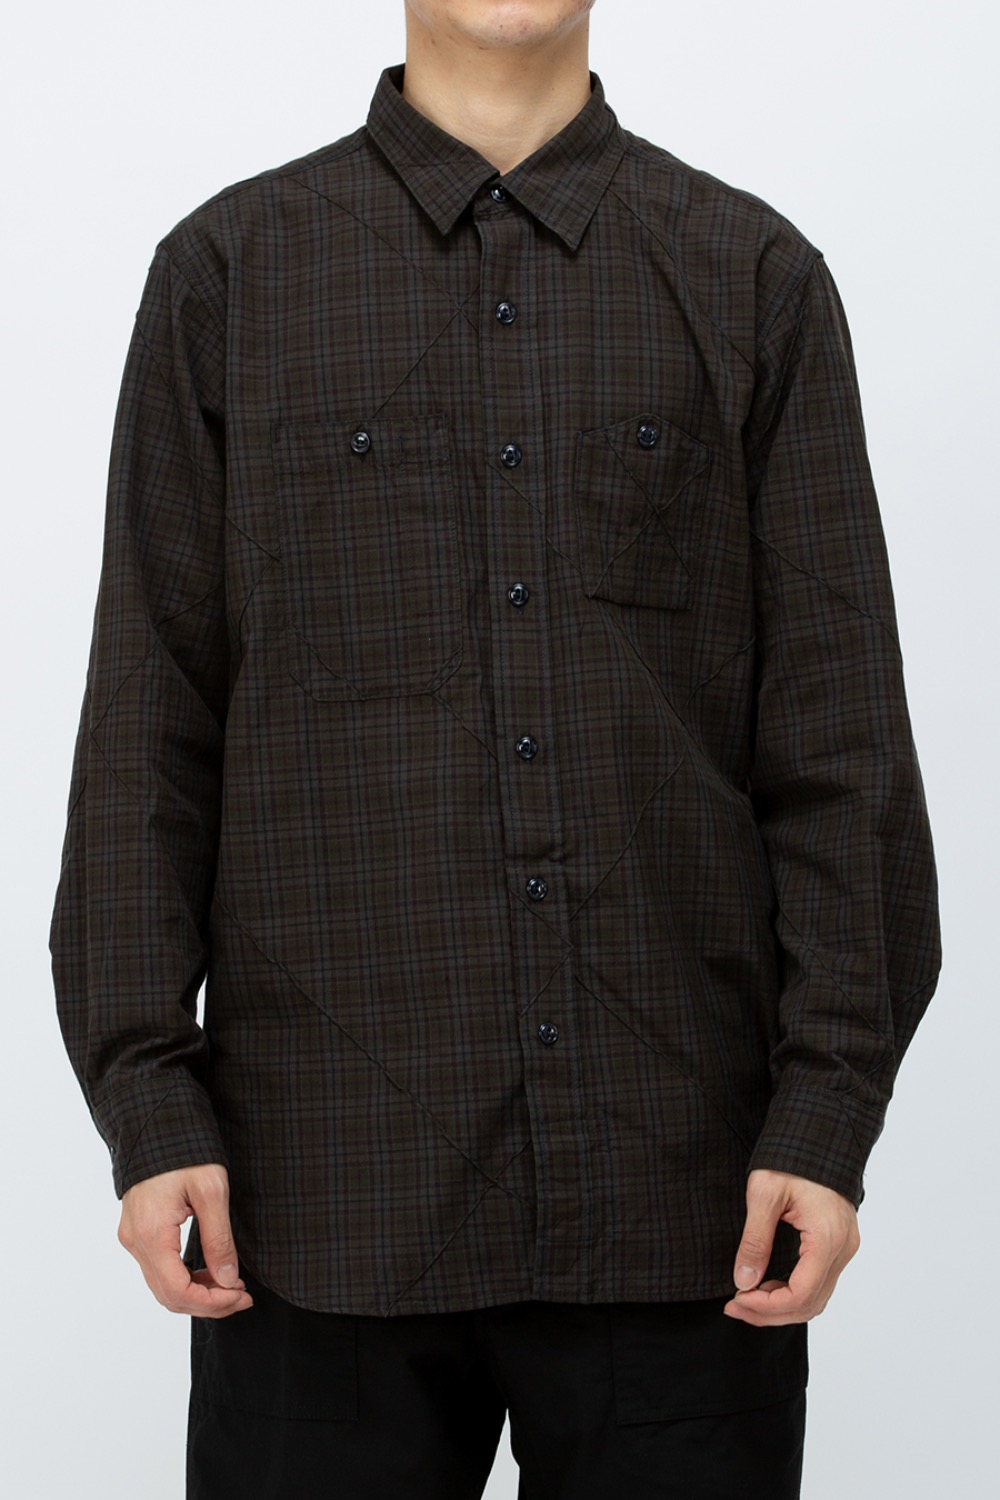 WORK SHIRT DK OLIVE COTTON PINTUCK SMALL PLAID